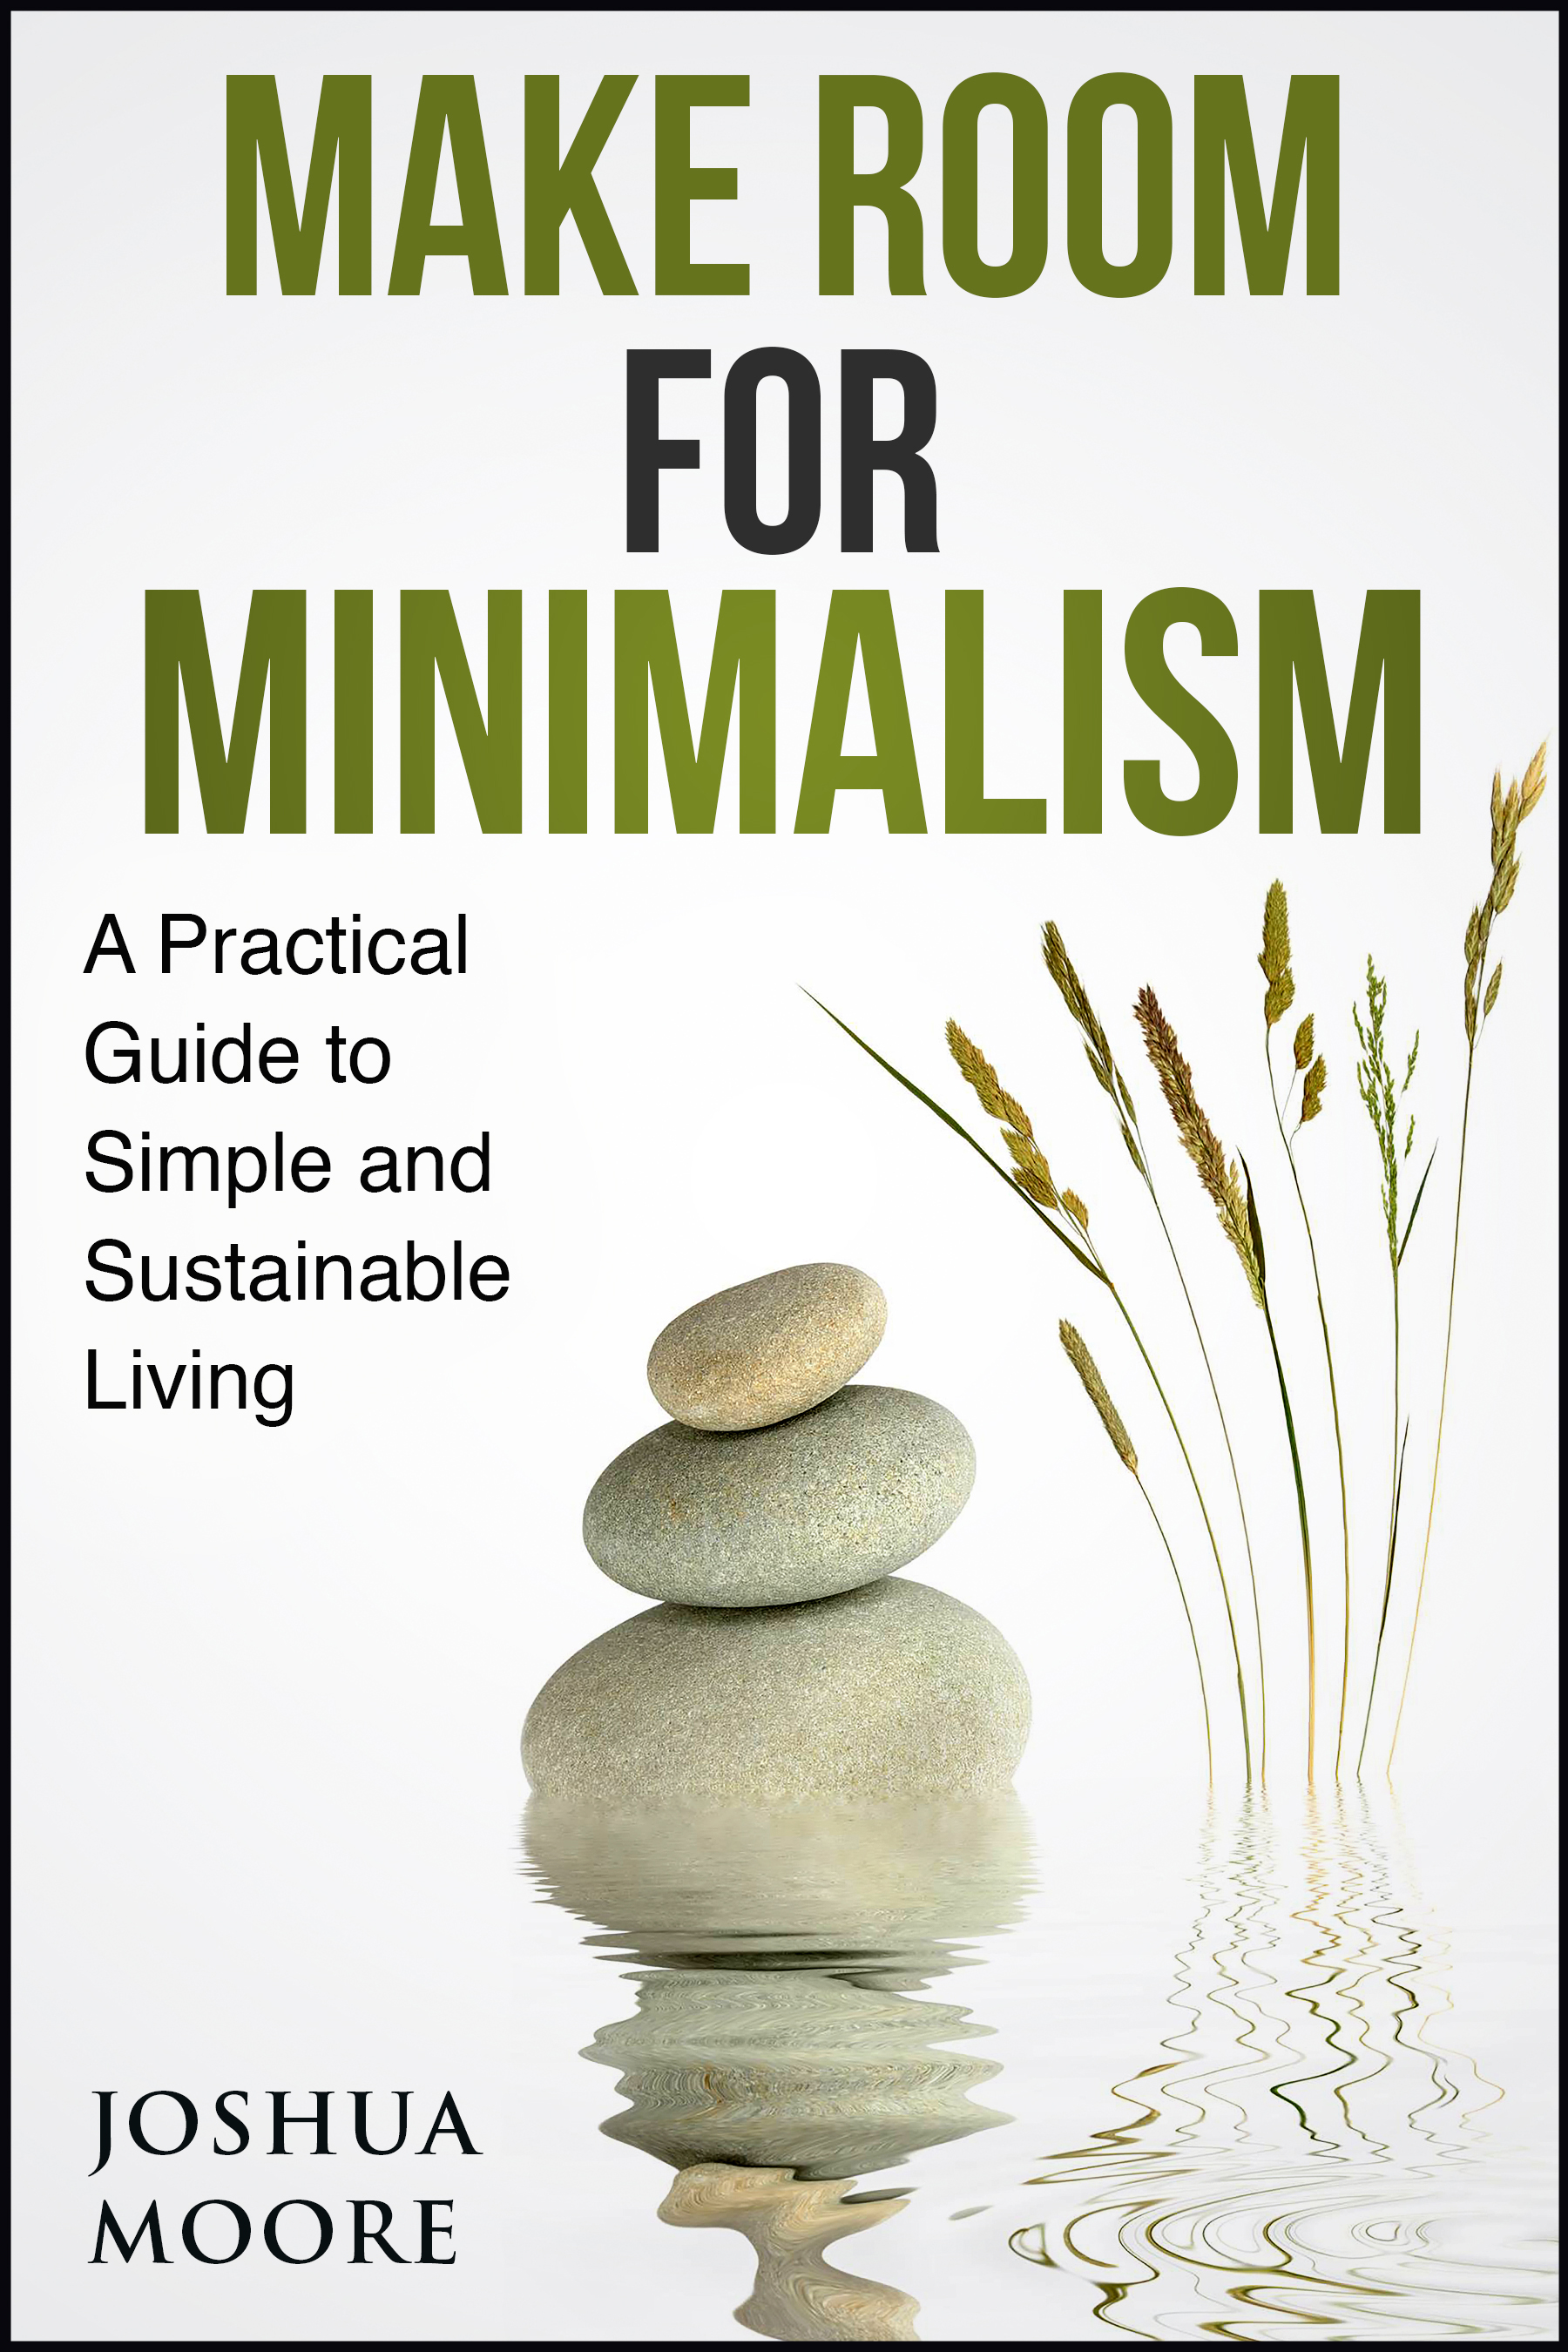 Make Room for Minimalism